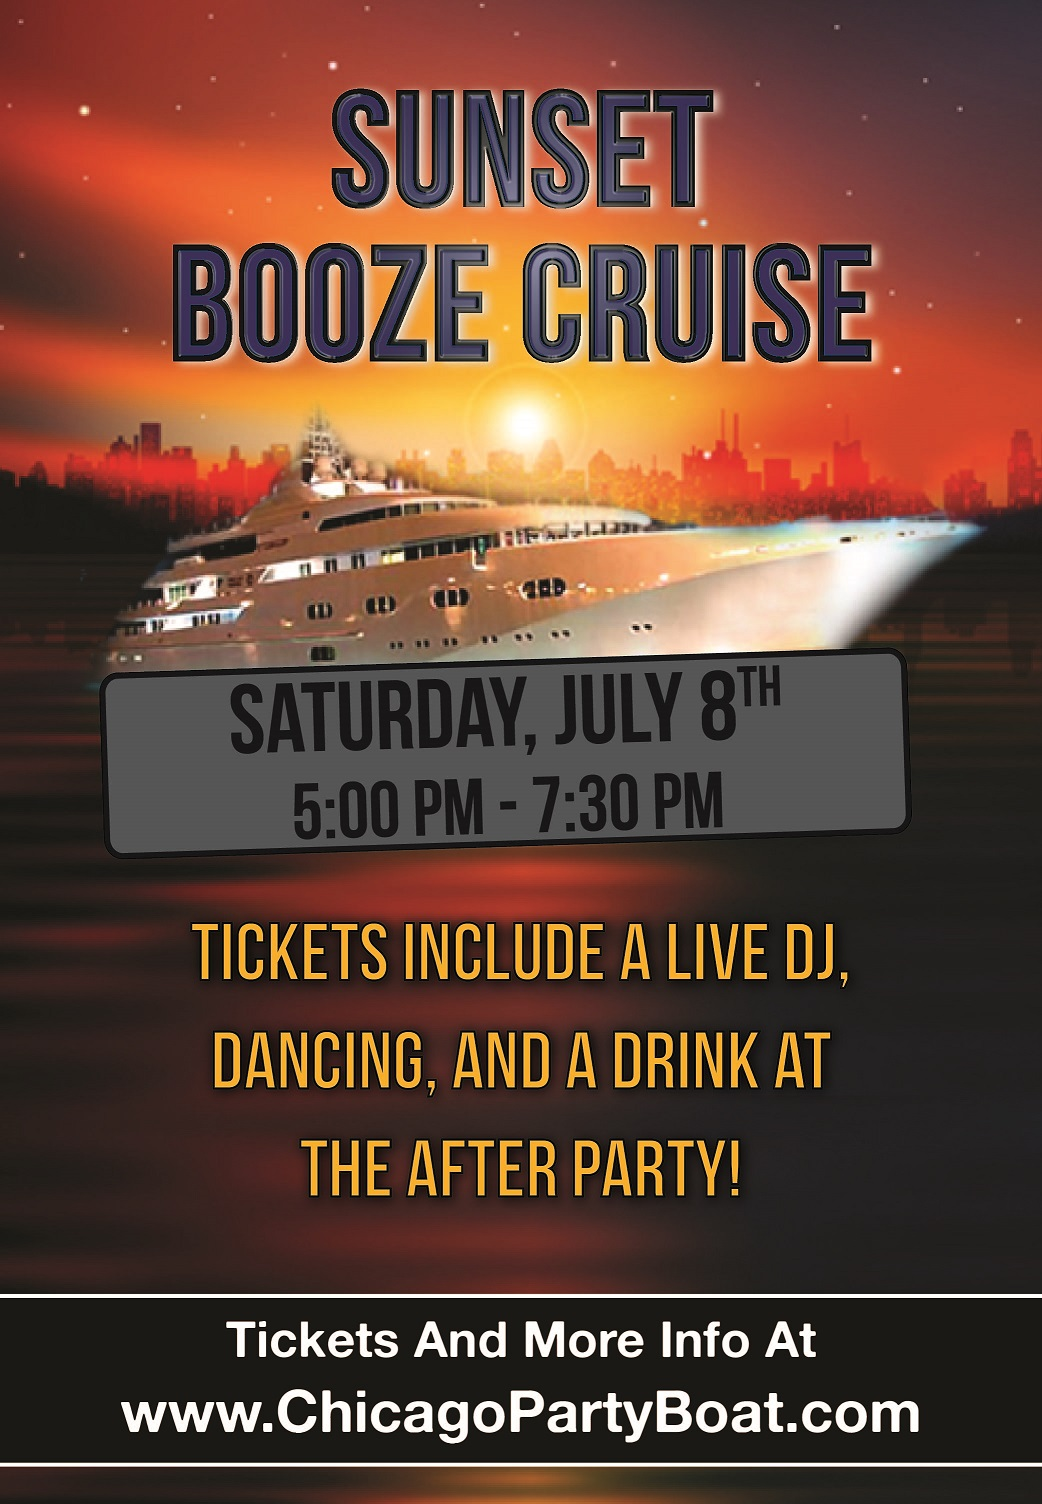 Sunset Booze Cruise on Lake Michigan! Tickets include a Live DJ, Dancing, and A Drink At The After-Party! Catch breathtaking views of the skyline while aboard the booze cruise!